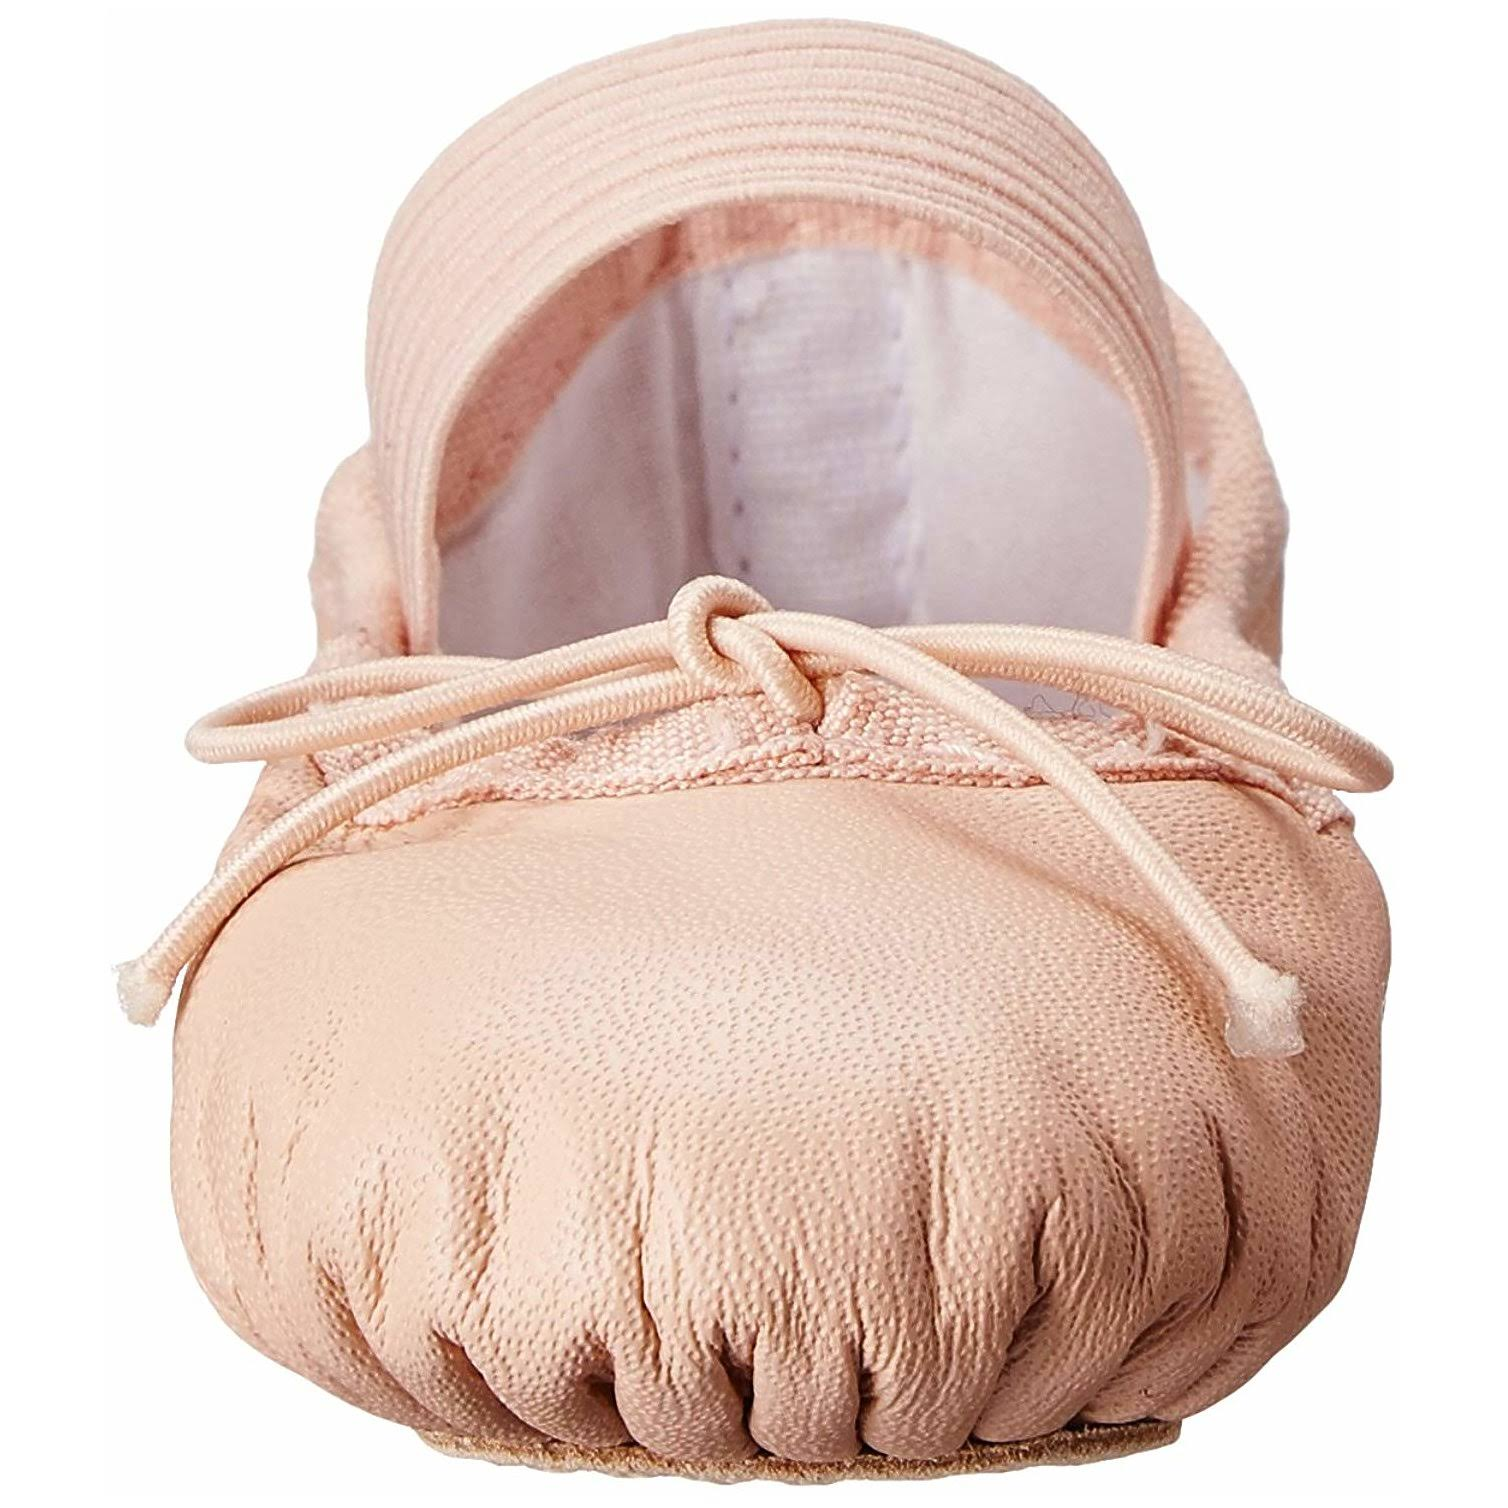 Bloch Dance Dansoft Ballet Slipper - Toddler/Little Kid, Pink, 1.5 B US Little Kid